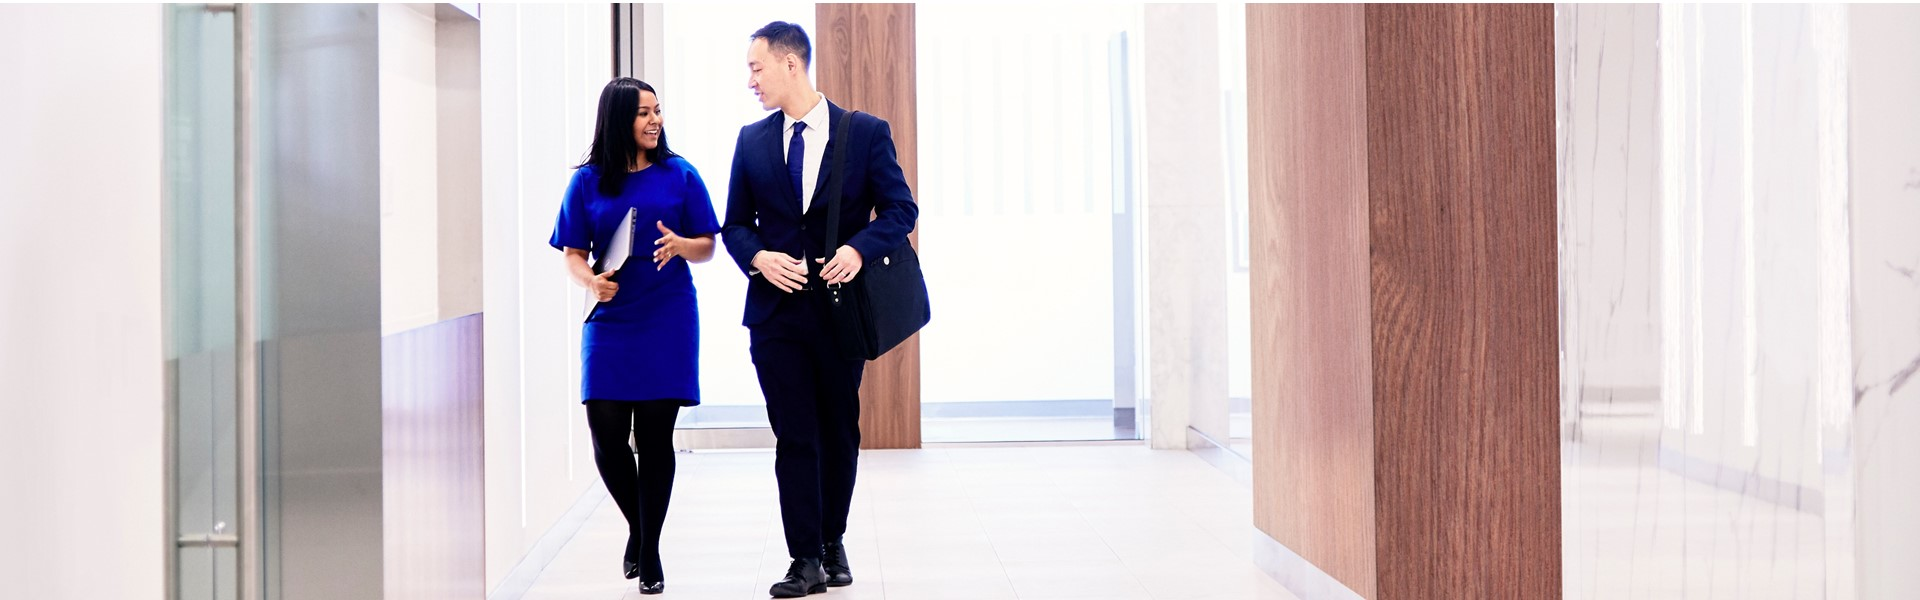 Two employees walk along a corridor in the bank lobby.